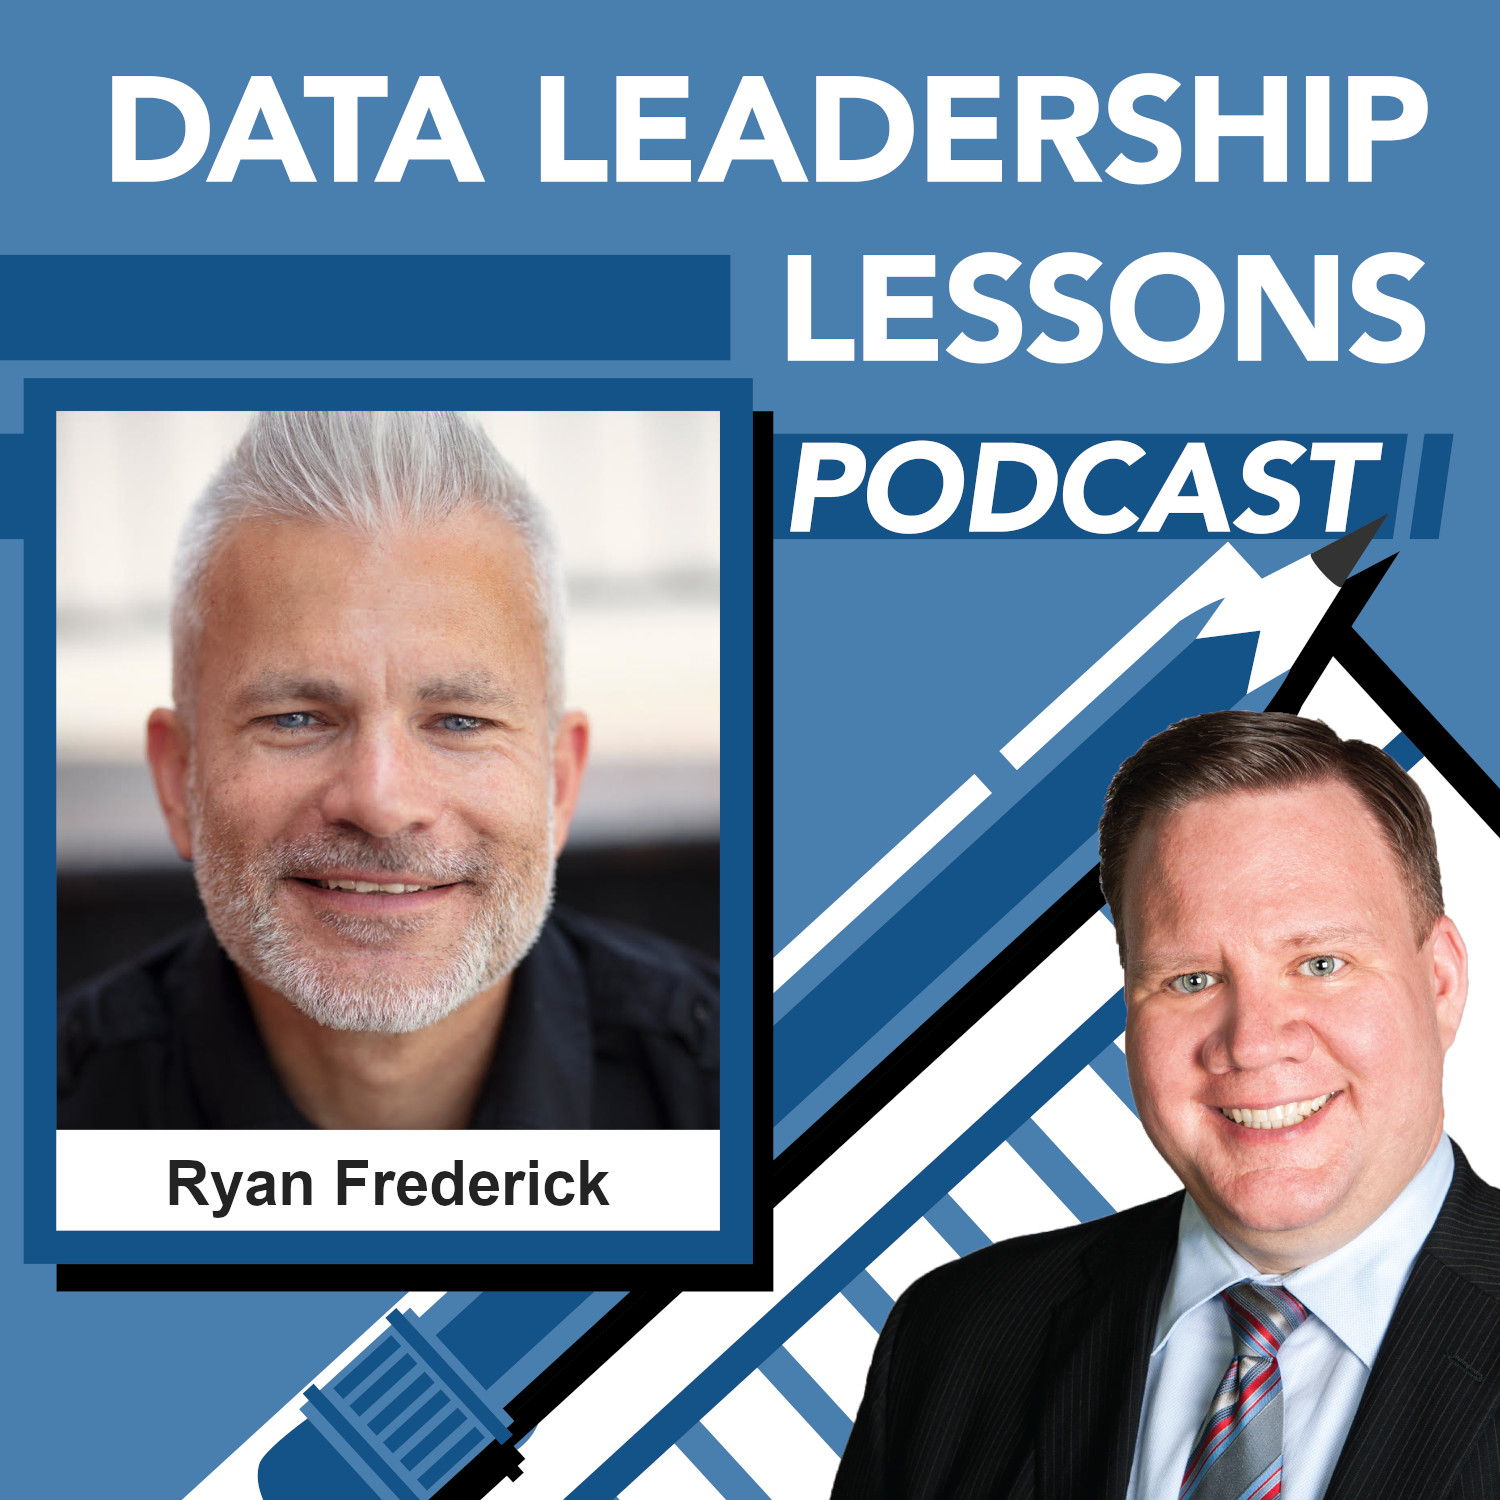 Data Leadership Lessons Podcast